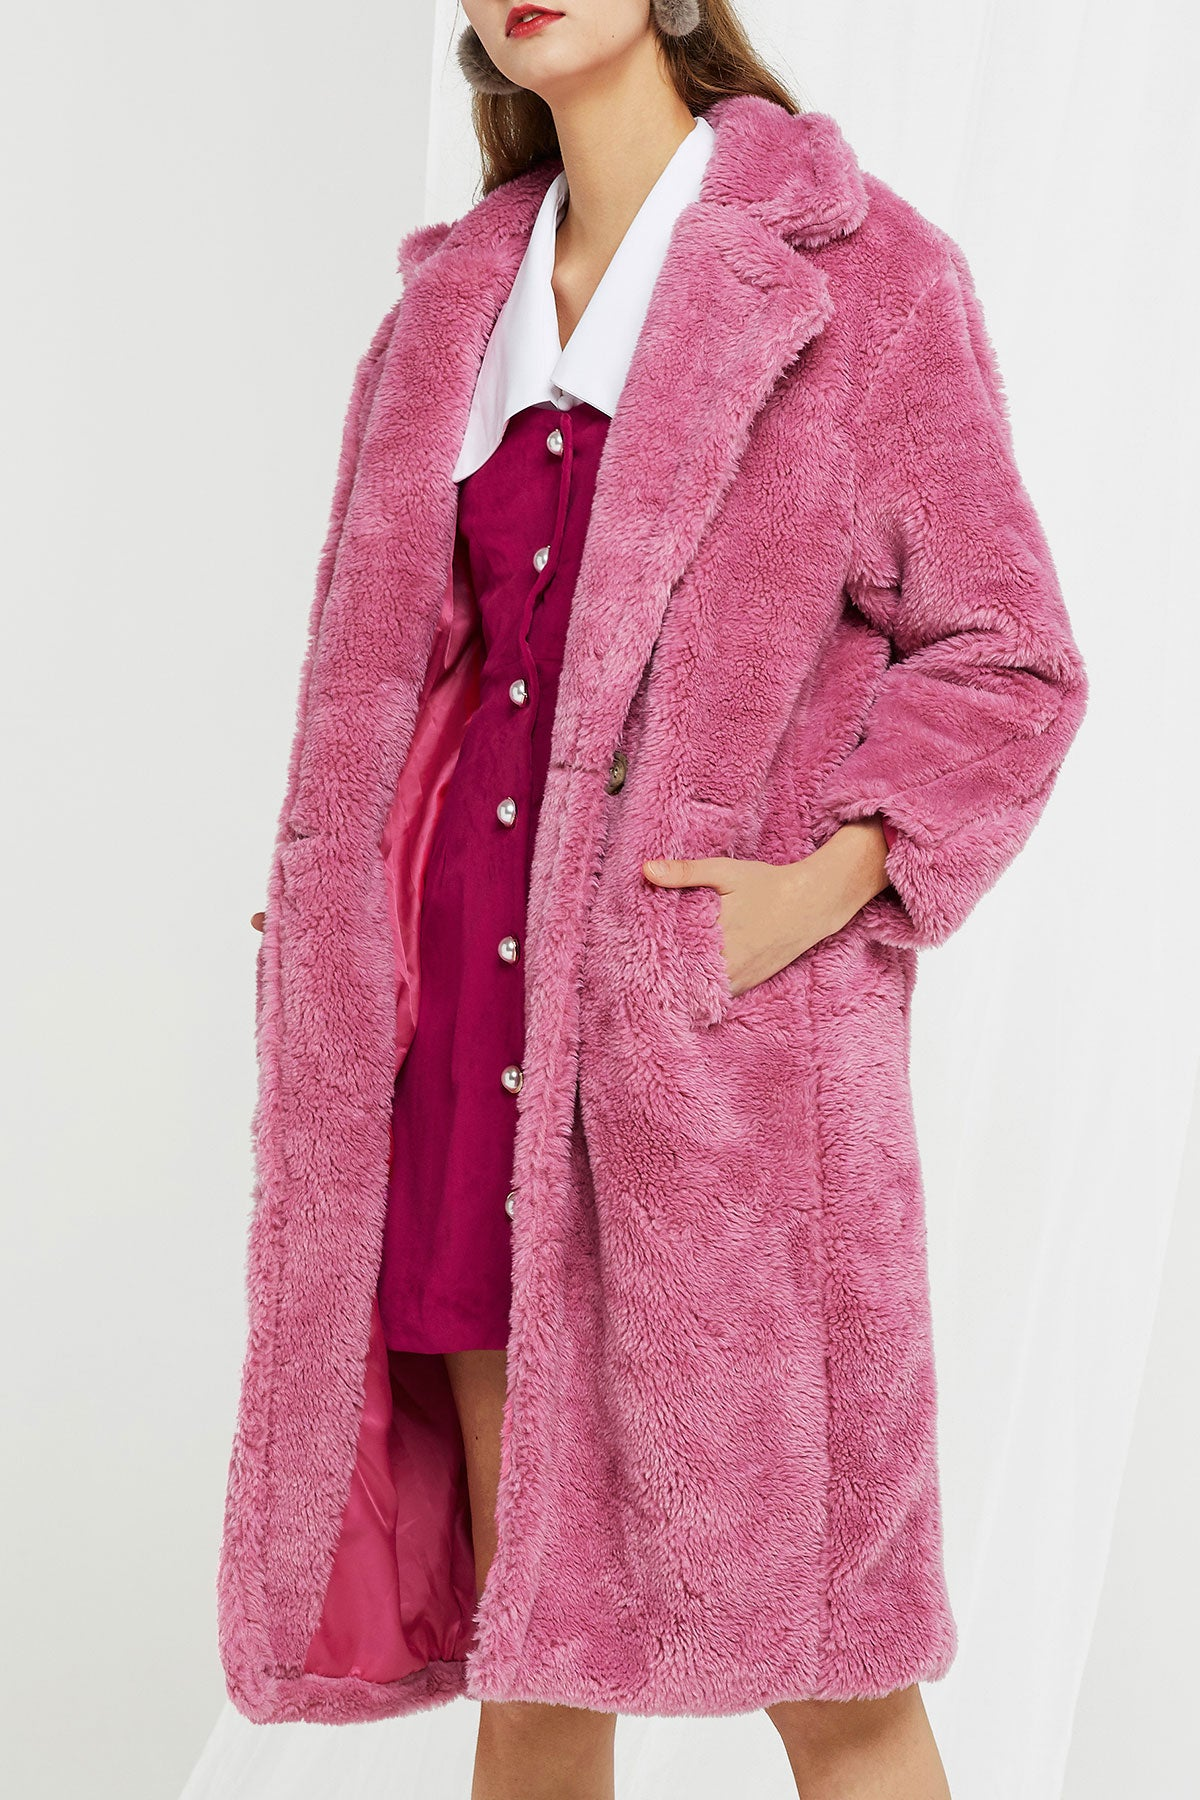 Louise Teddy Coat-2 Colors